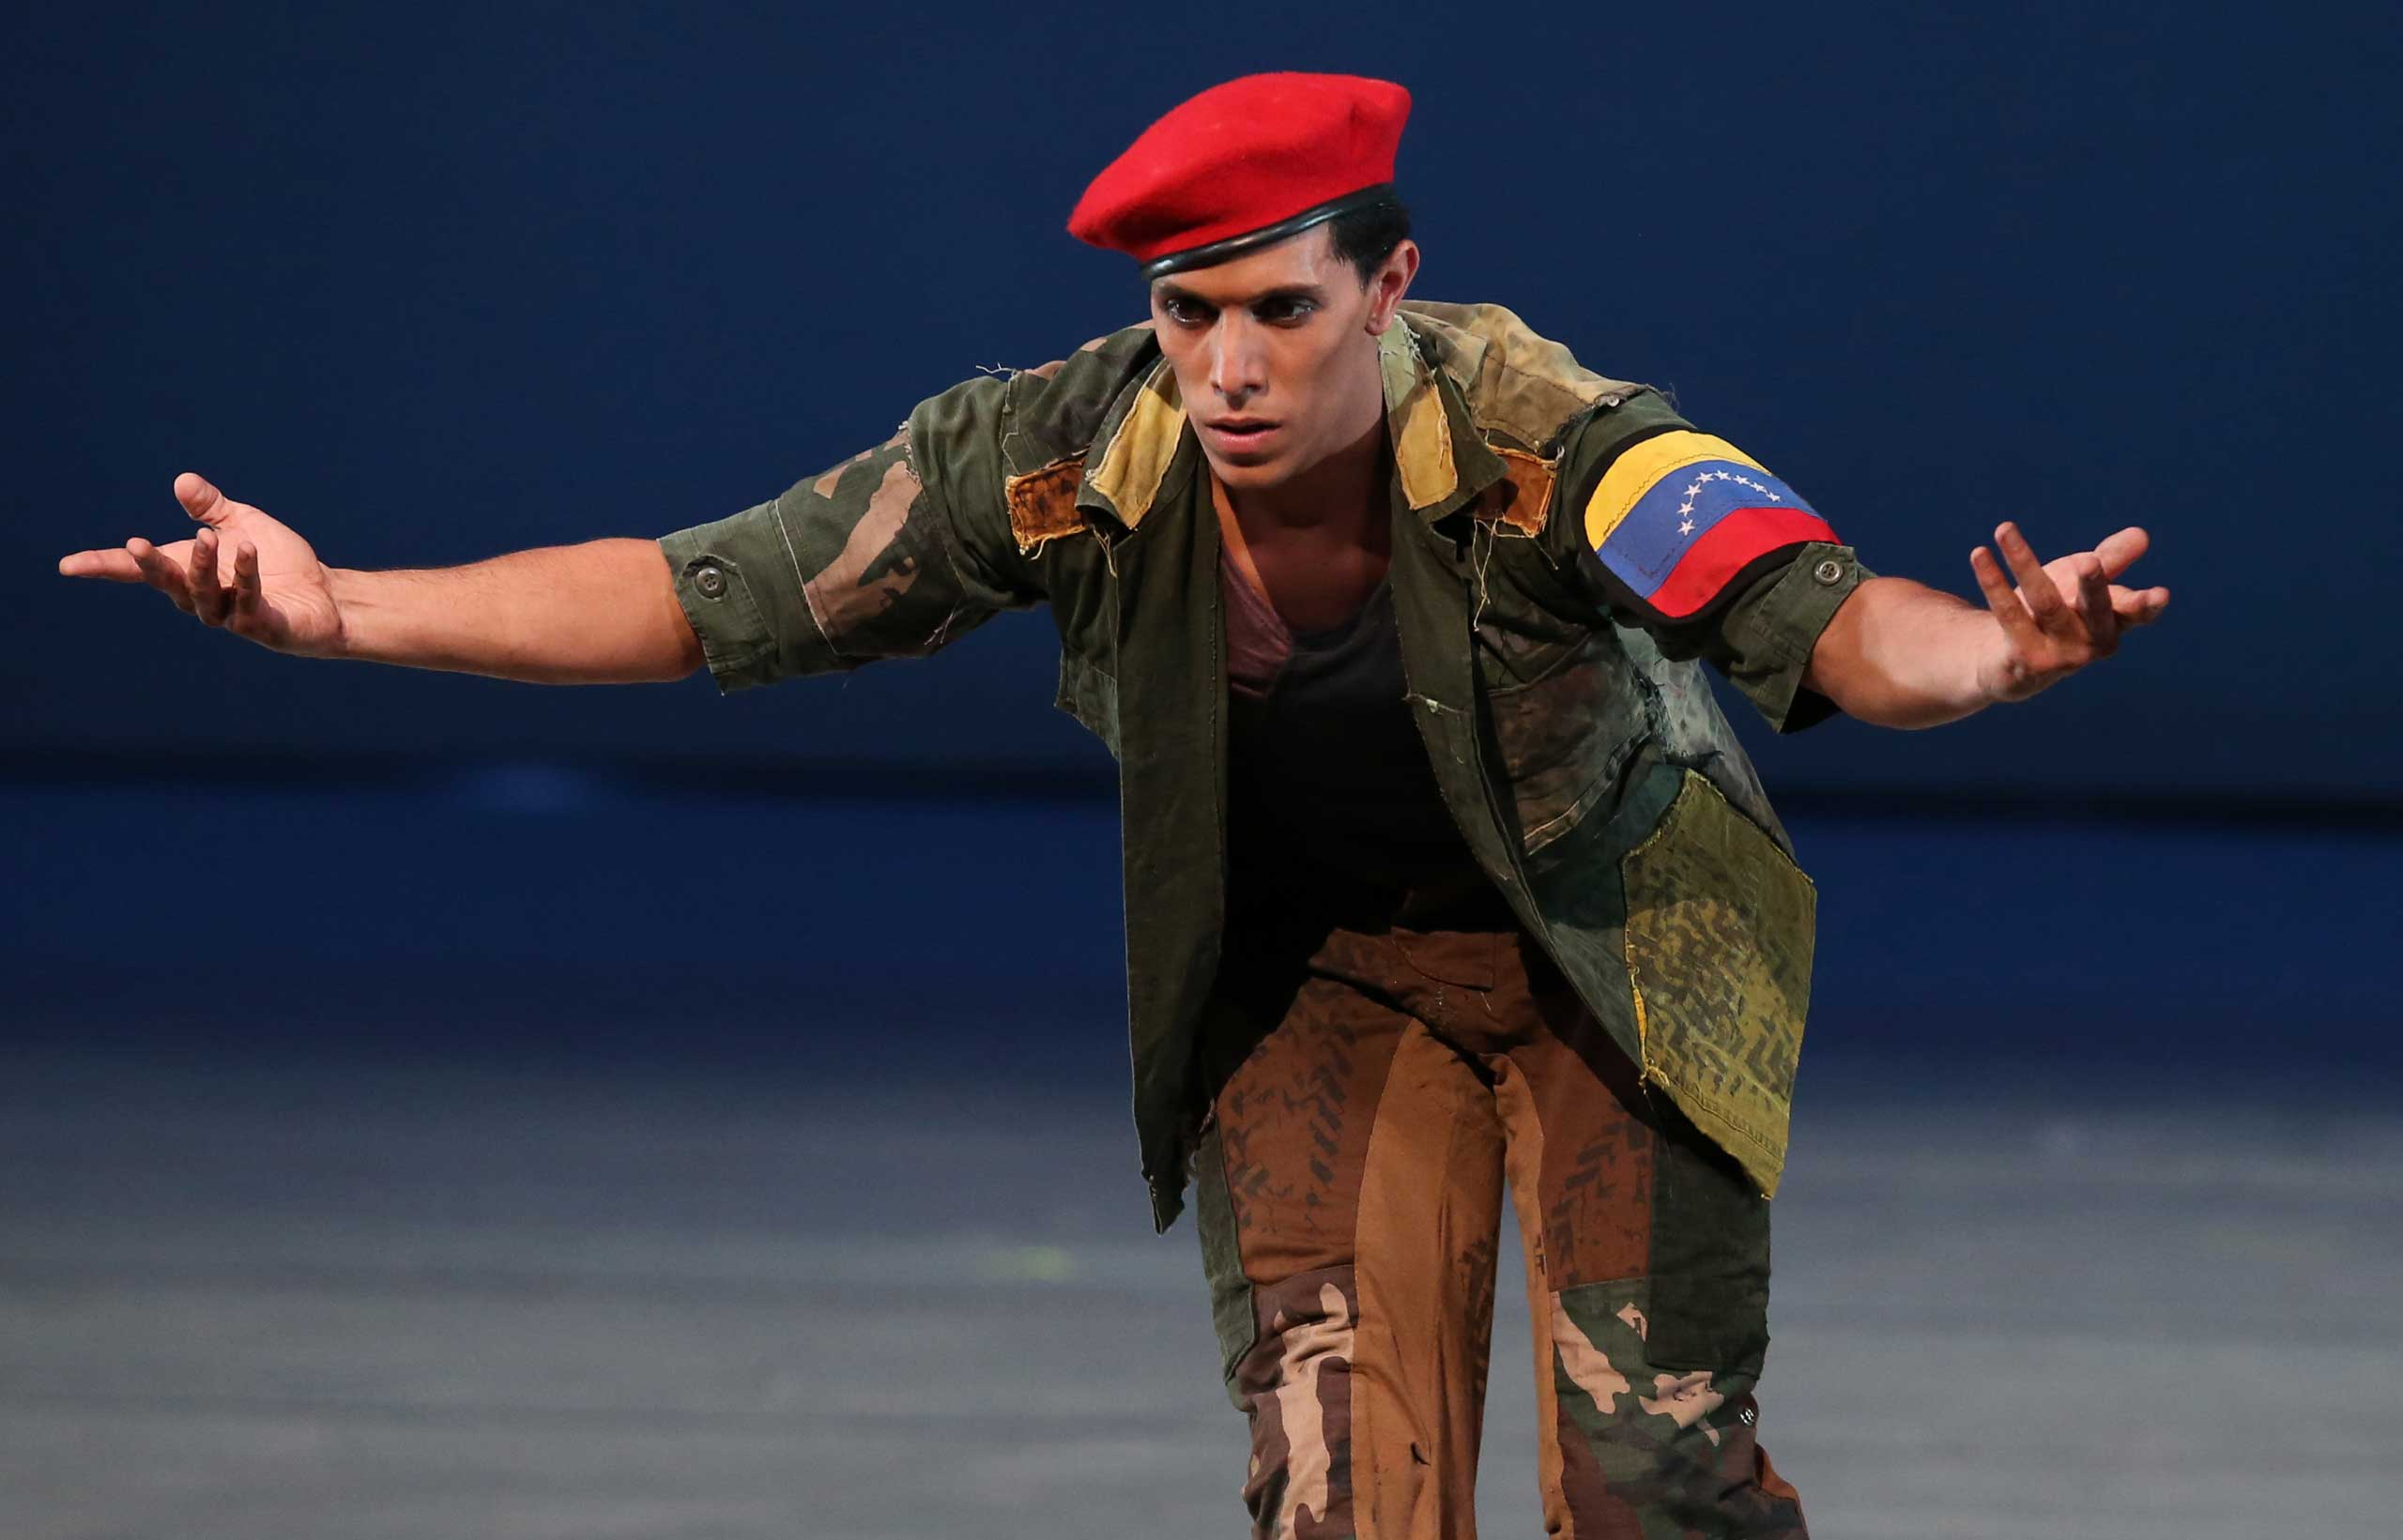 John Lobo, 29, performing as Venezuela's late president Hugo Chavez in the star role of the  Ballet of the Spider-Seller to Liberator , at the Teresa Carreno Theater in Caracas, Nov. 27, 2014.